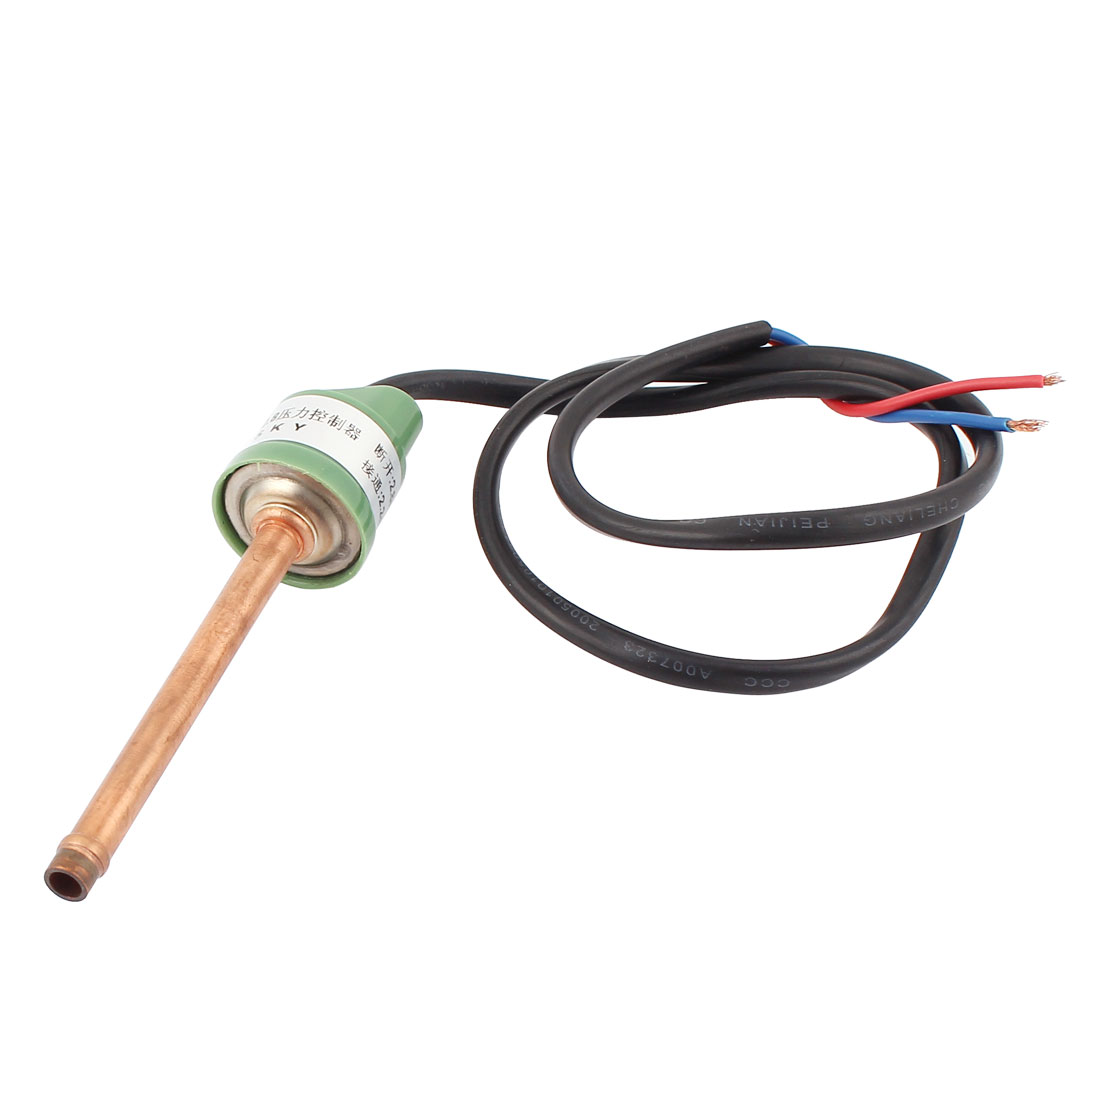 Air Conditioner Refrigeration Heat Pump 2.2-2.8Mpa Wired Pressure Control Switch